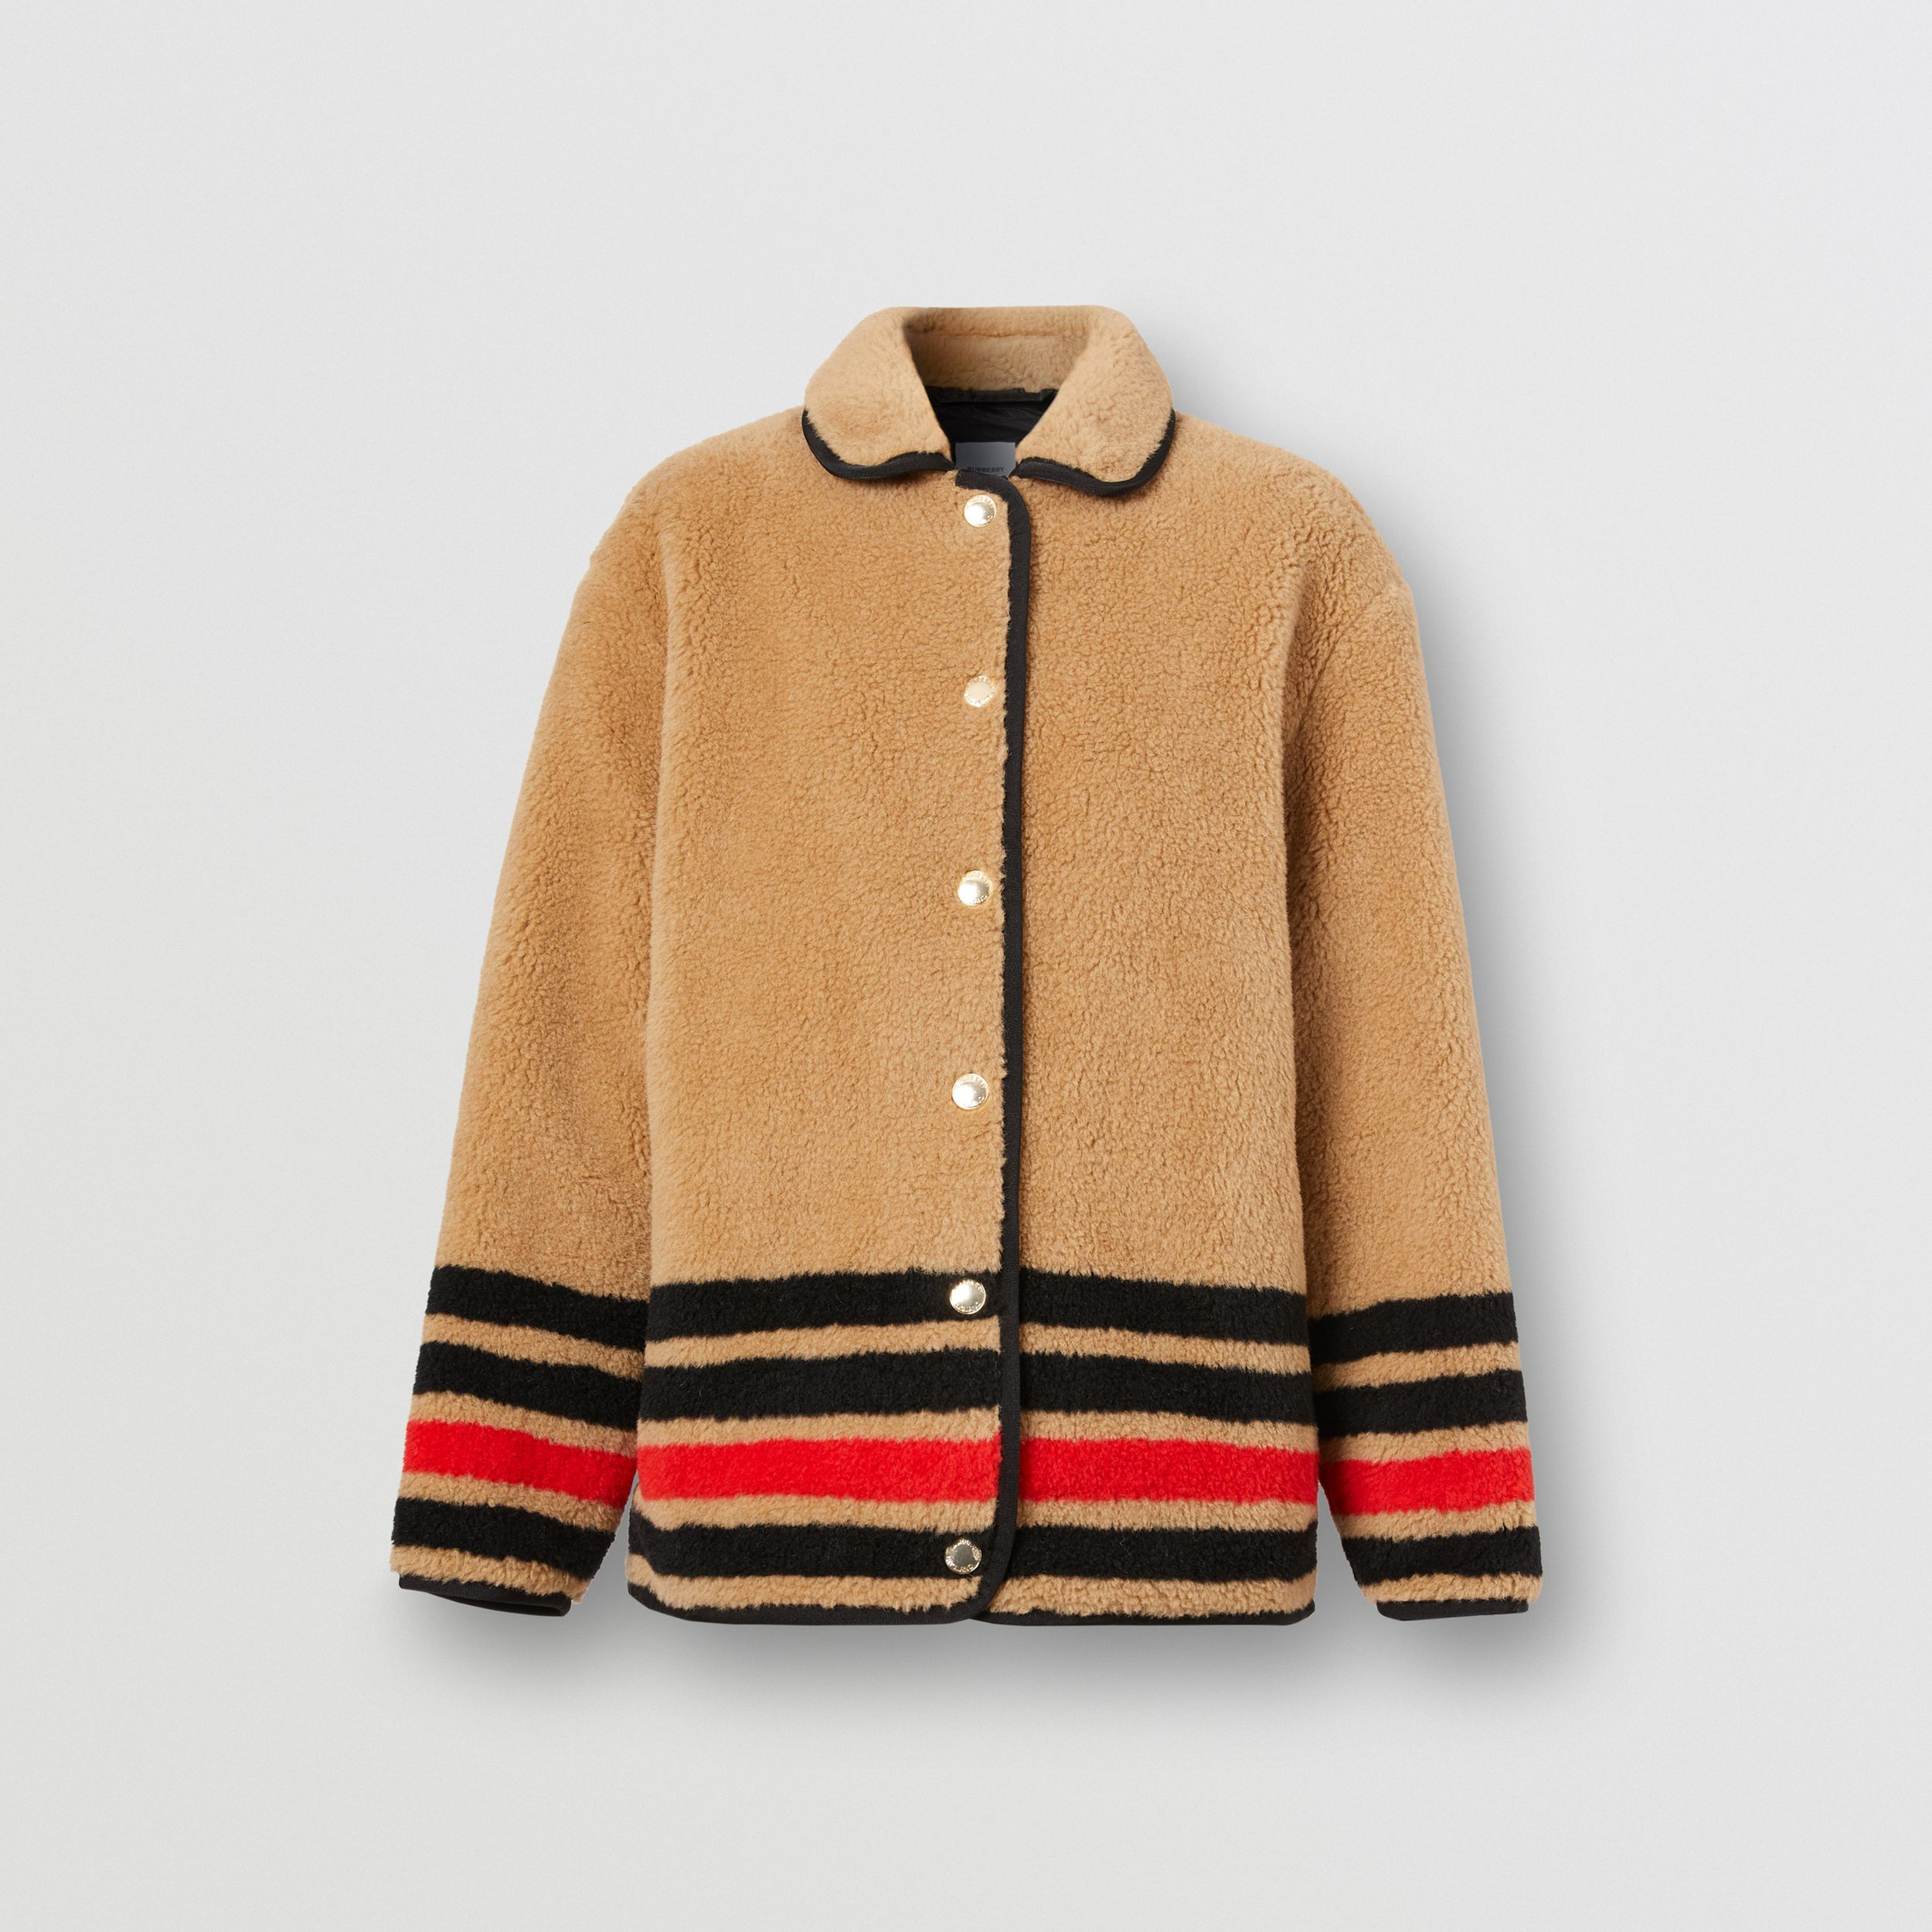 Stripe Intarsia Fleece Jacket in Light Camel - Women | Burberry - 4